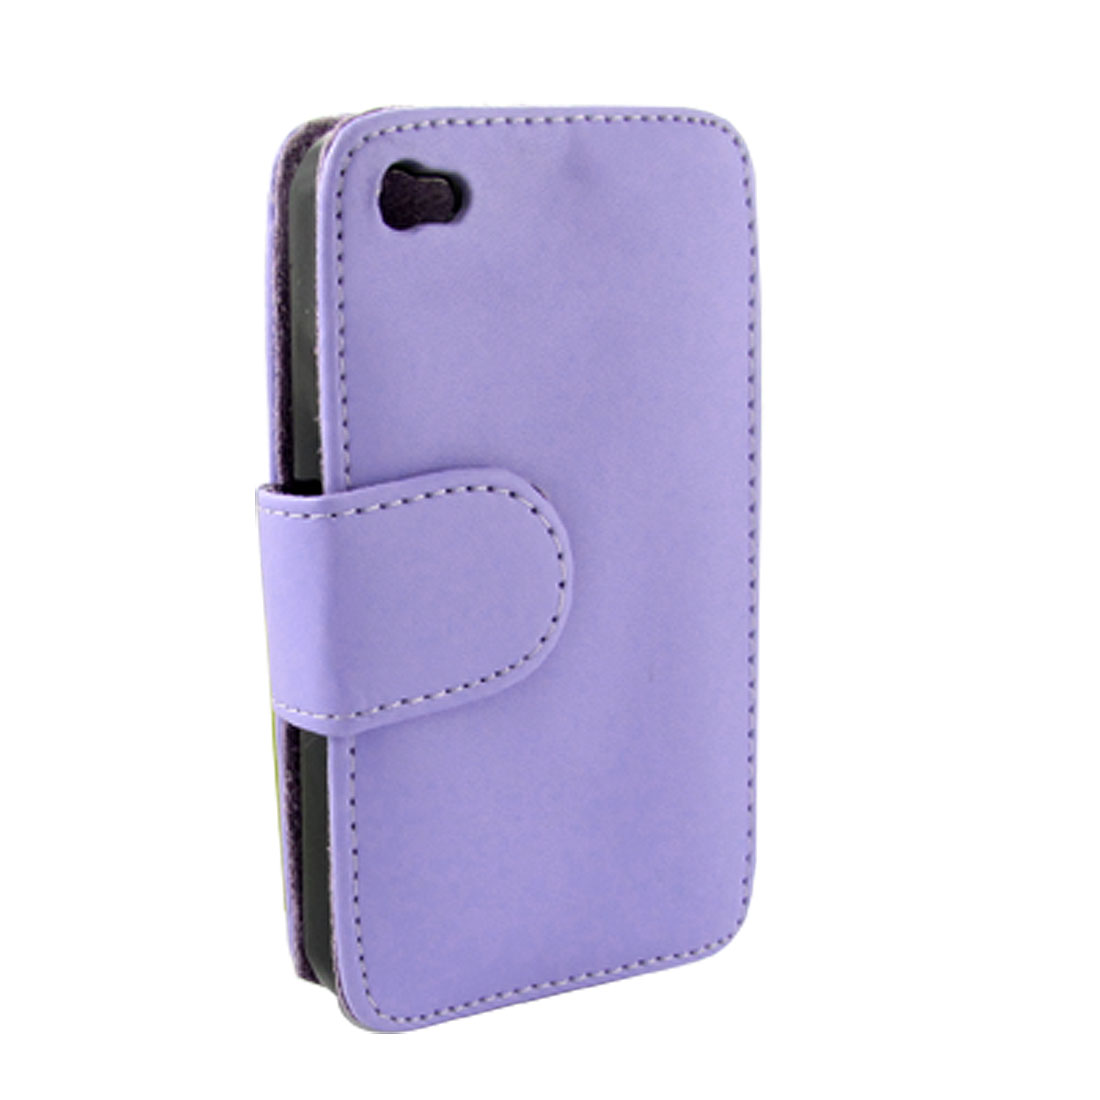 Light Purple Faux Leather Flip Protective Holder Cover for iPhone 4